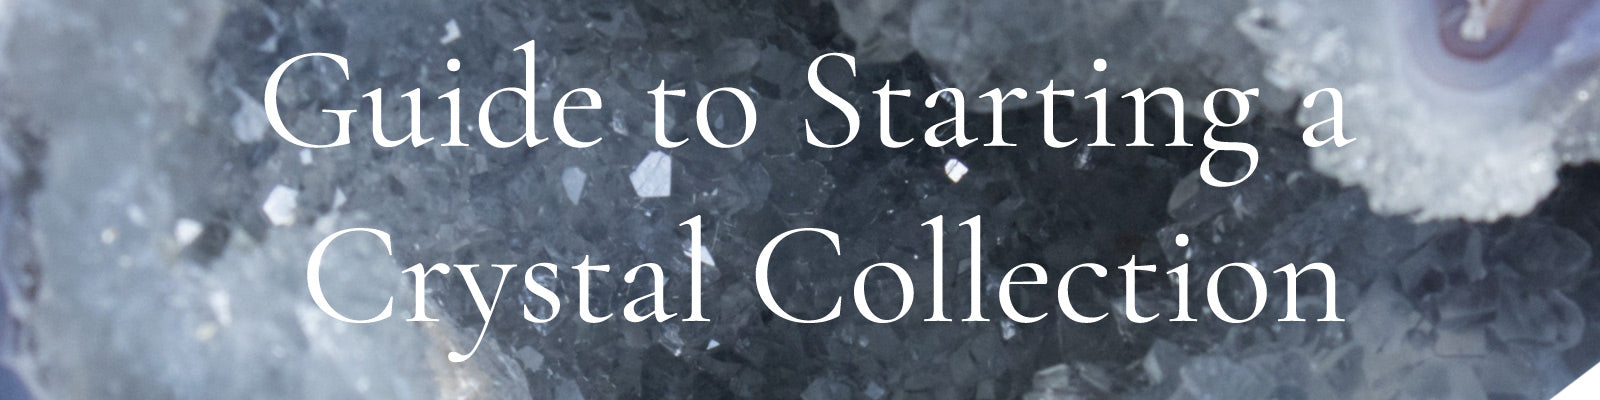 Guide to Starting a Crystal Collection